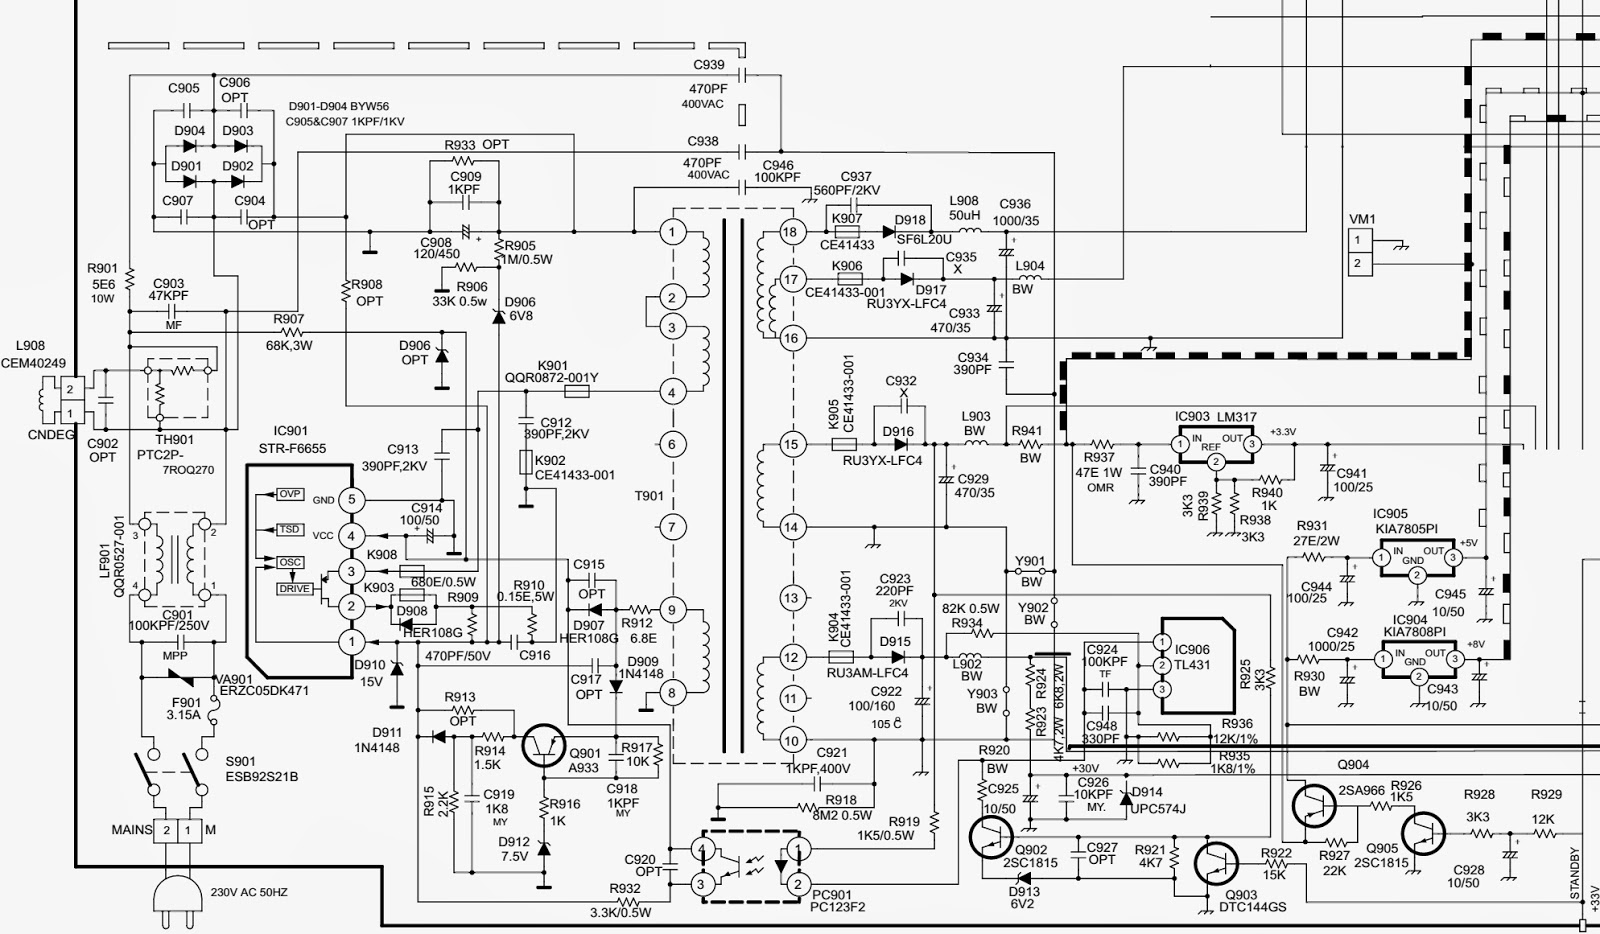 Onida Oxygen 29 Tv Smps Schematc Circuit Diagram Str F6655 3 Schematic Wiring Click On The To Magnify